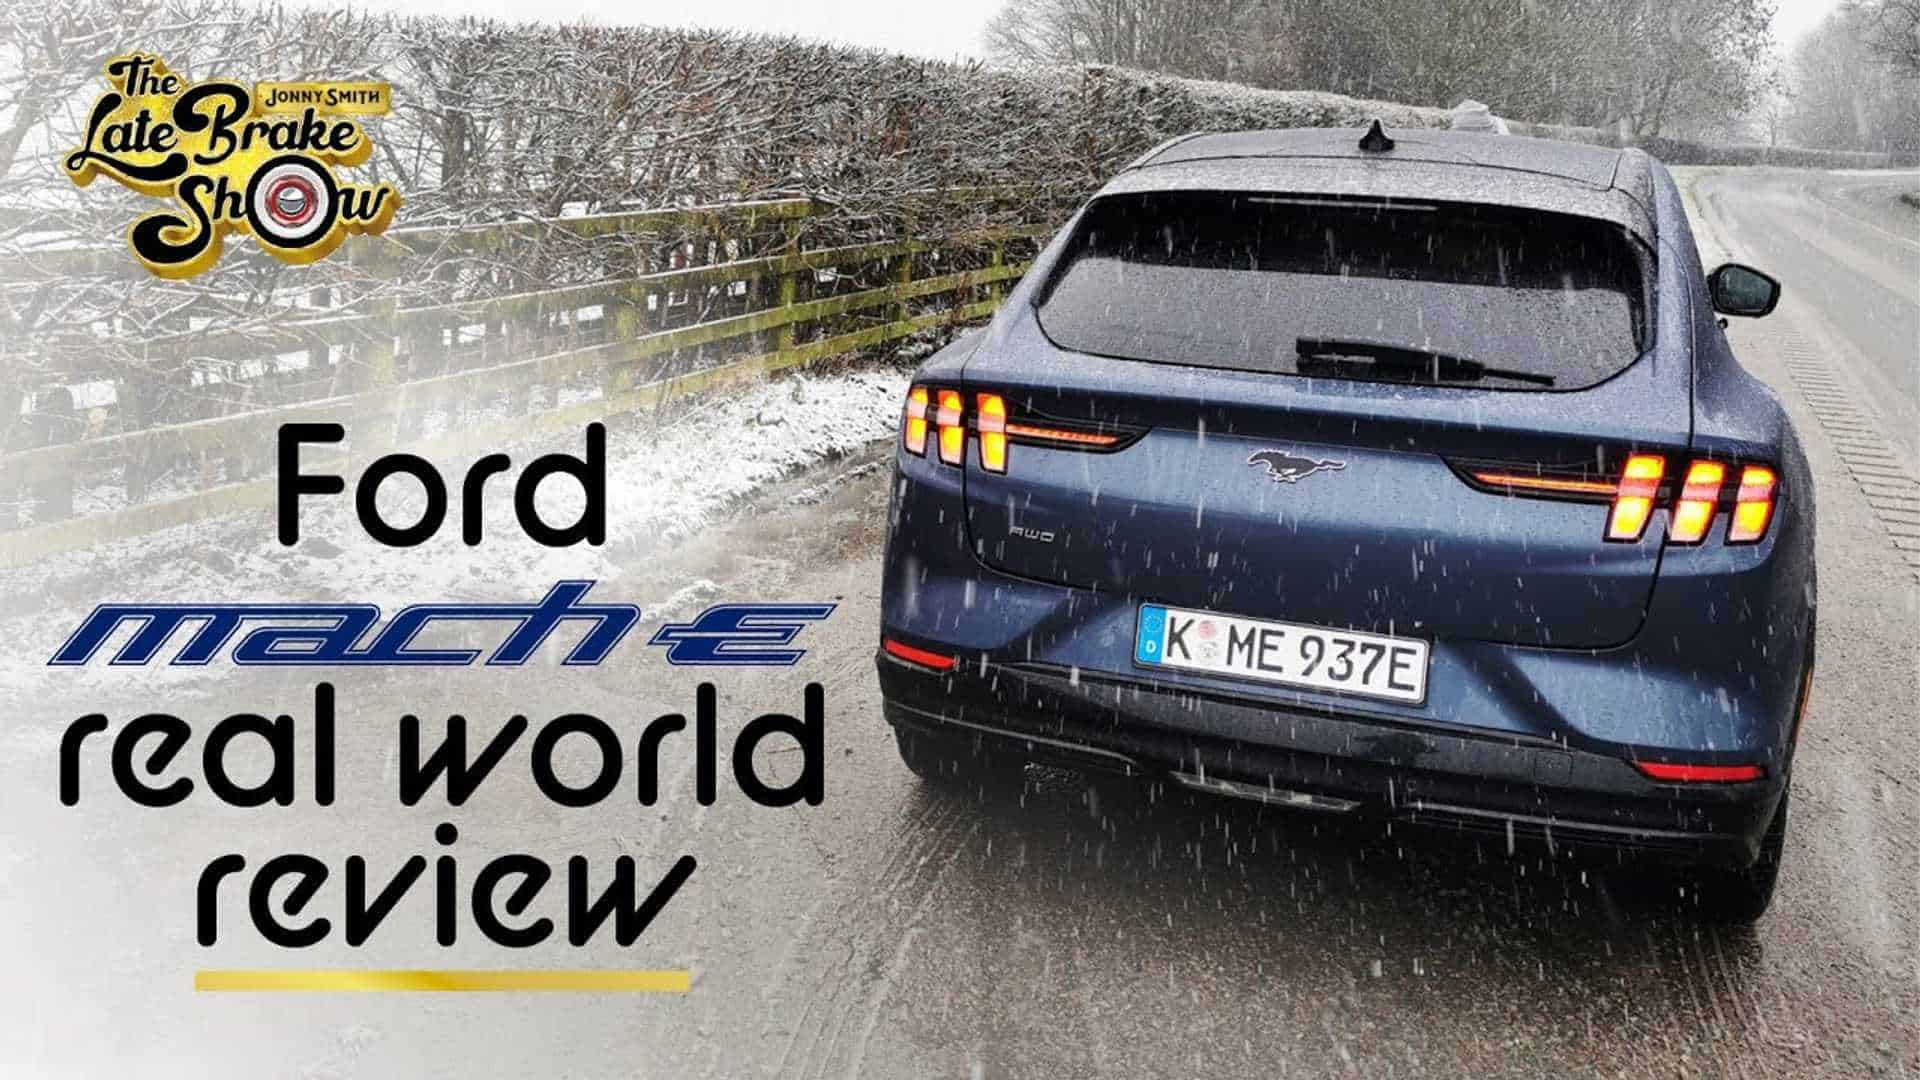 Mustang Mach-E Reviewed In Dismal British Winter Weather